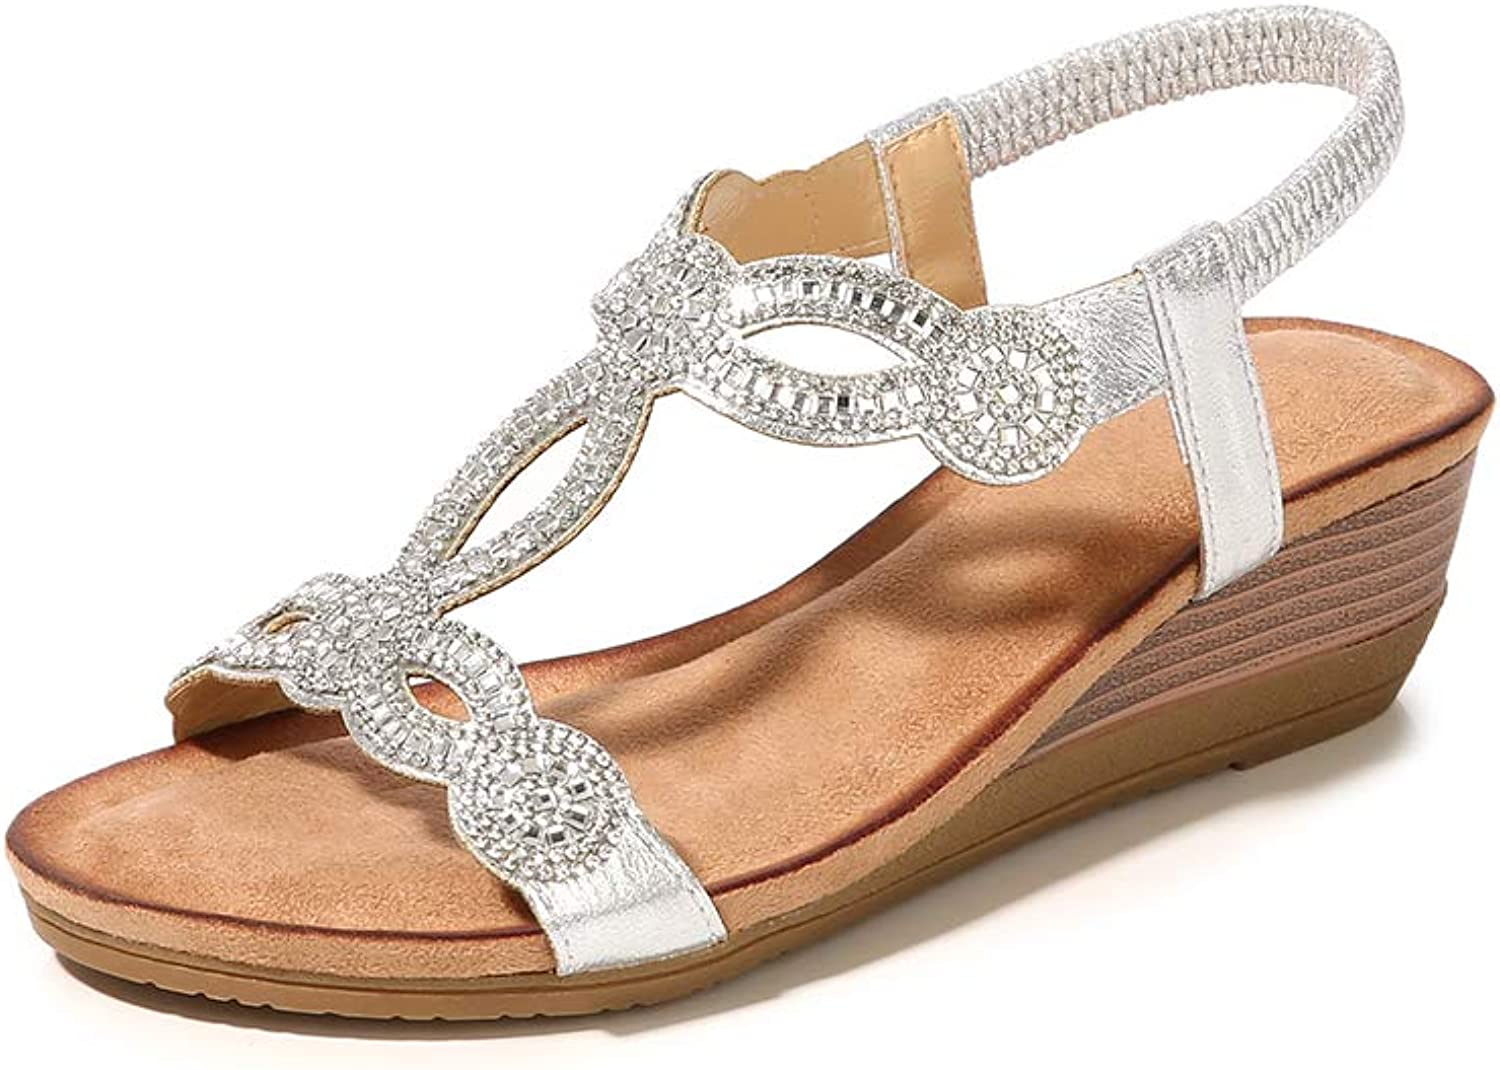 Mekidy Women's Fashion Jeweled Beaded Wedge Leather Sandals